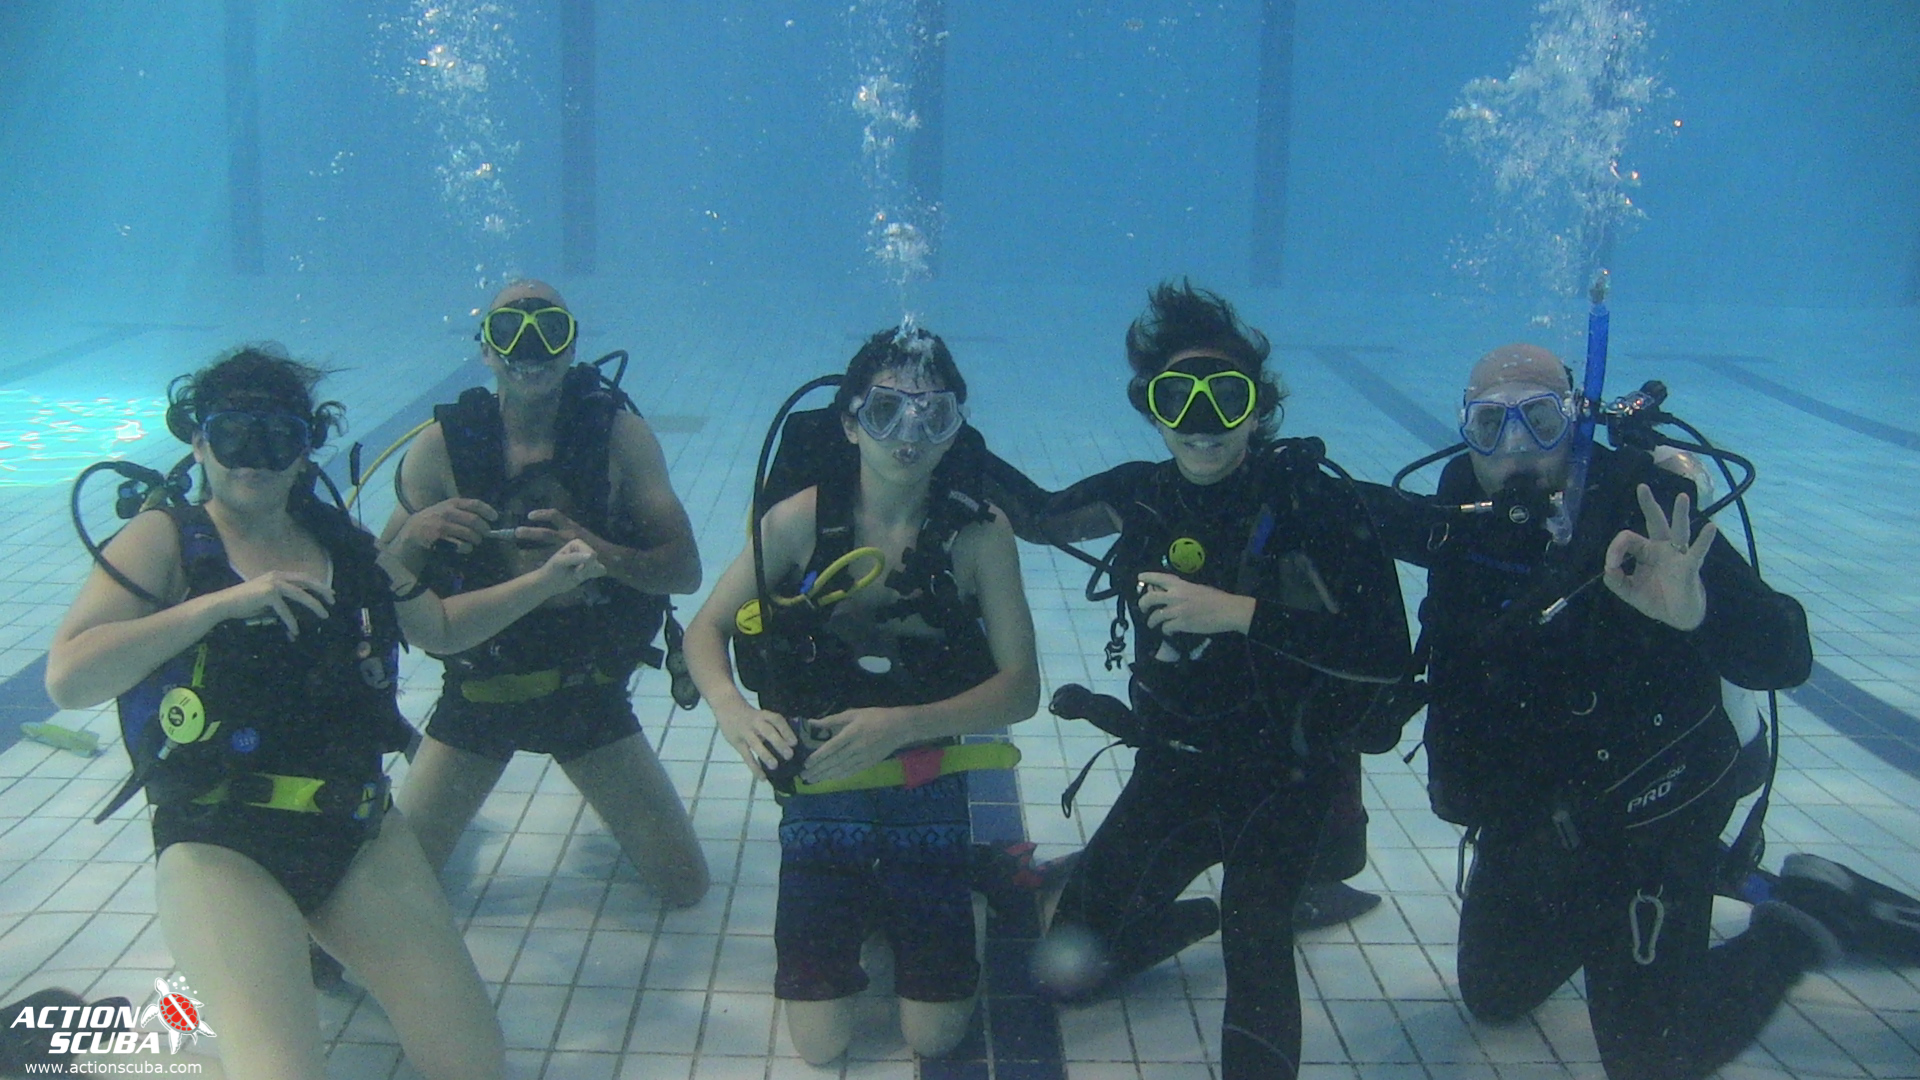 Love Scuba Diving? Looking to help people transform their lives?